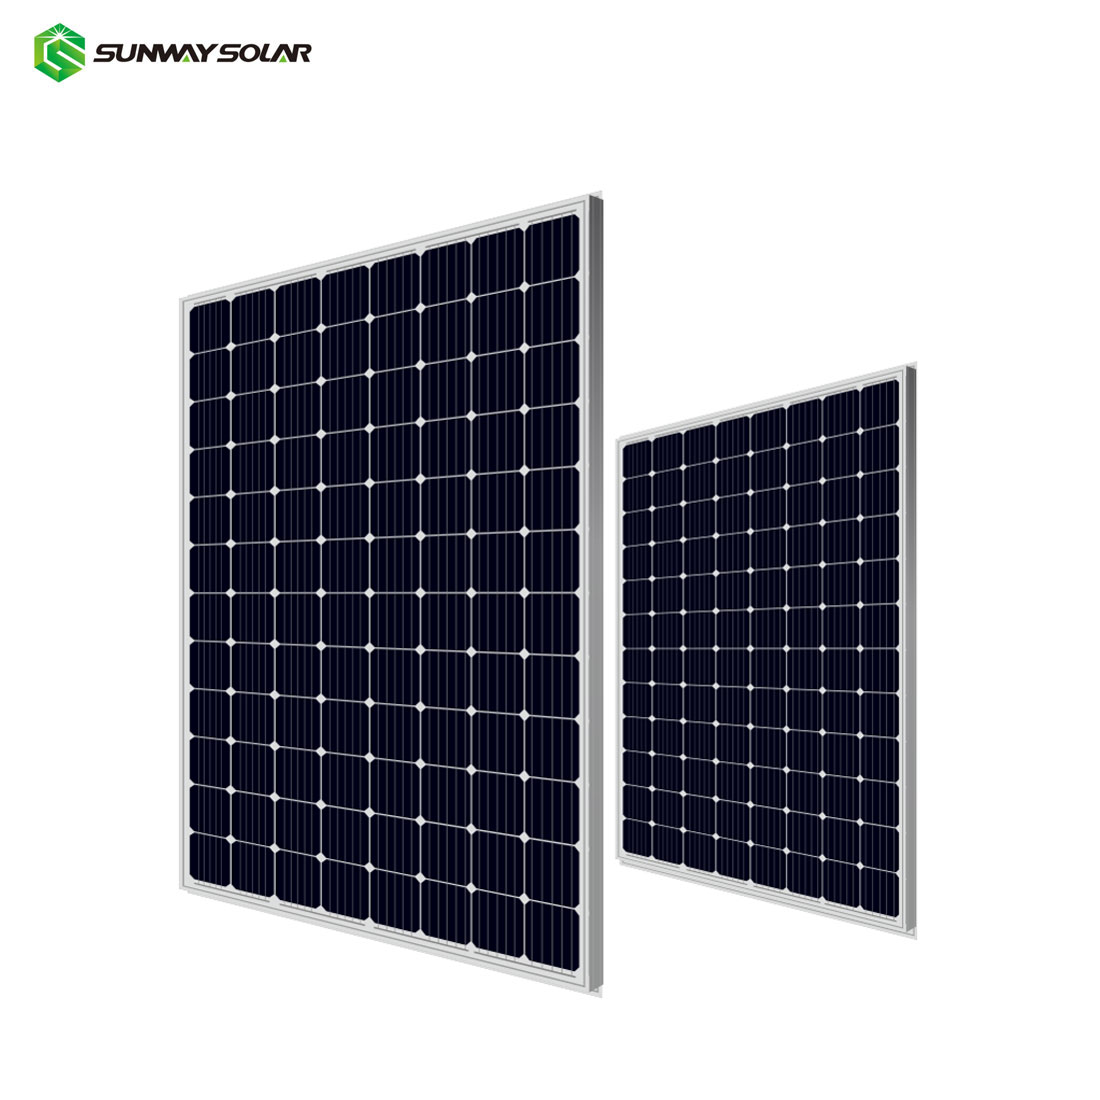 China Pv Panel 500w, China Pv Panel 500w Manufacturers and Suppliers